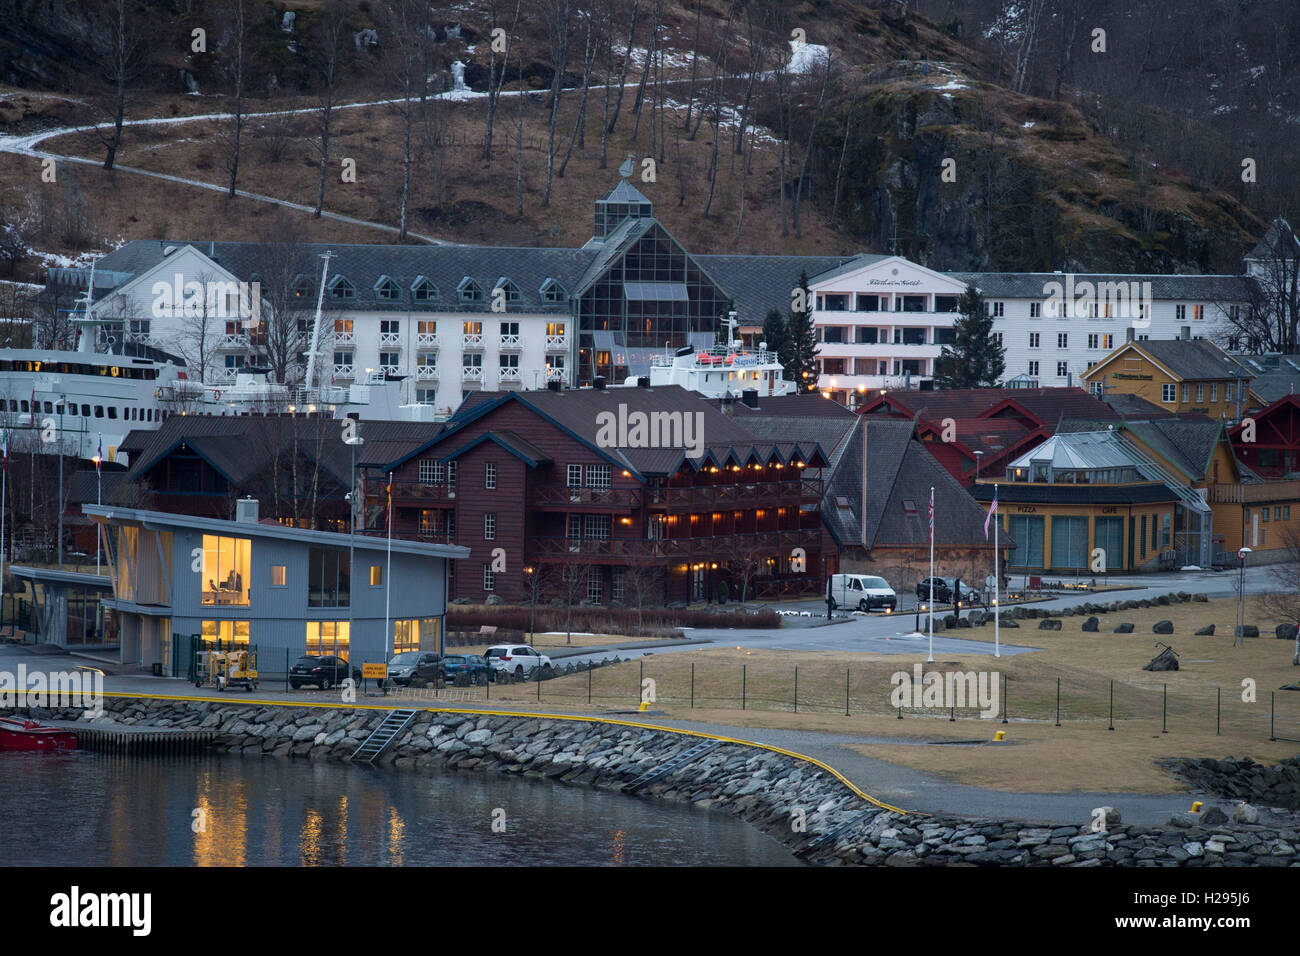 Flam cruise port in Norway. - Stock Image